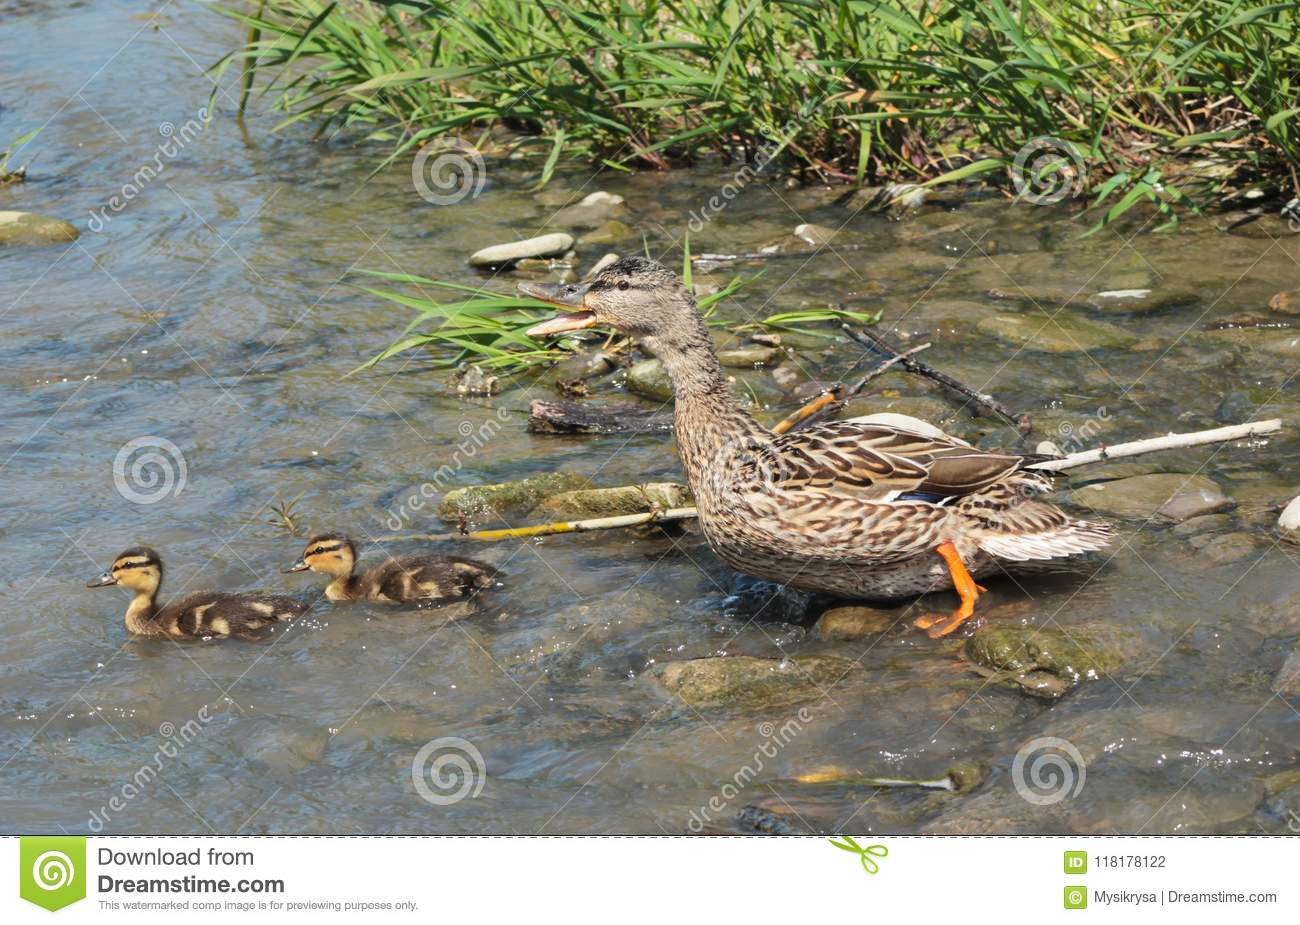 And med ducklings